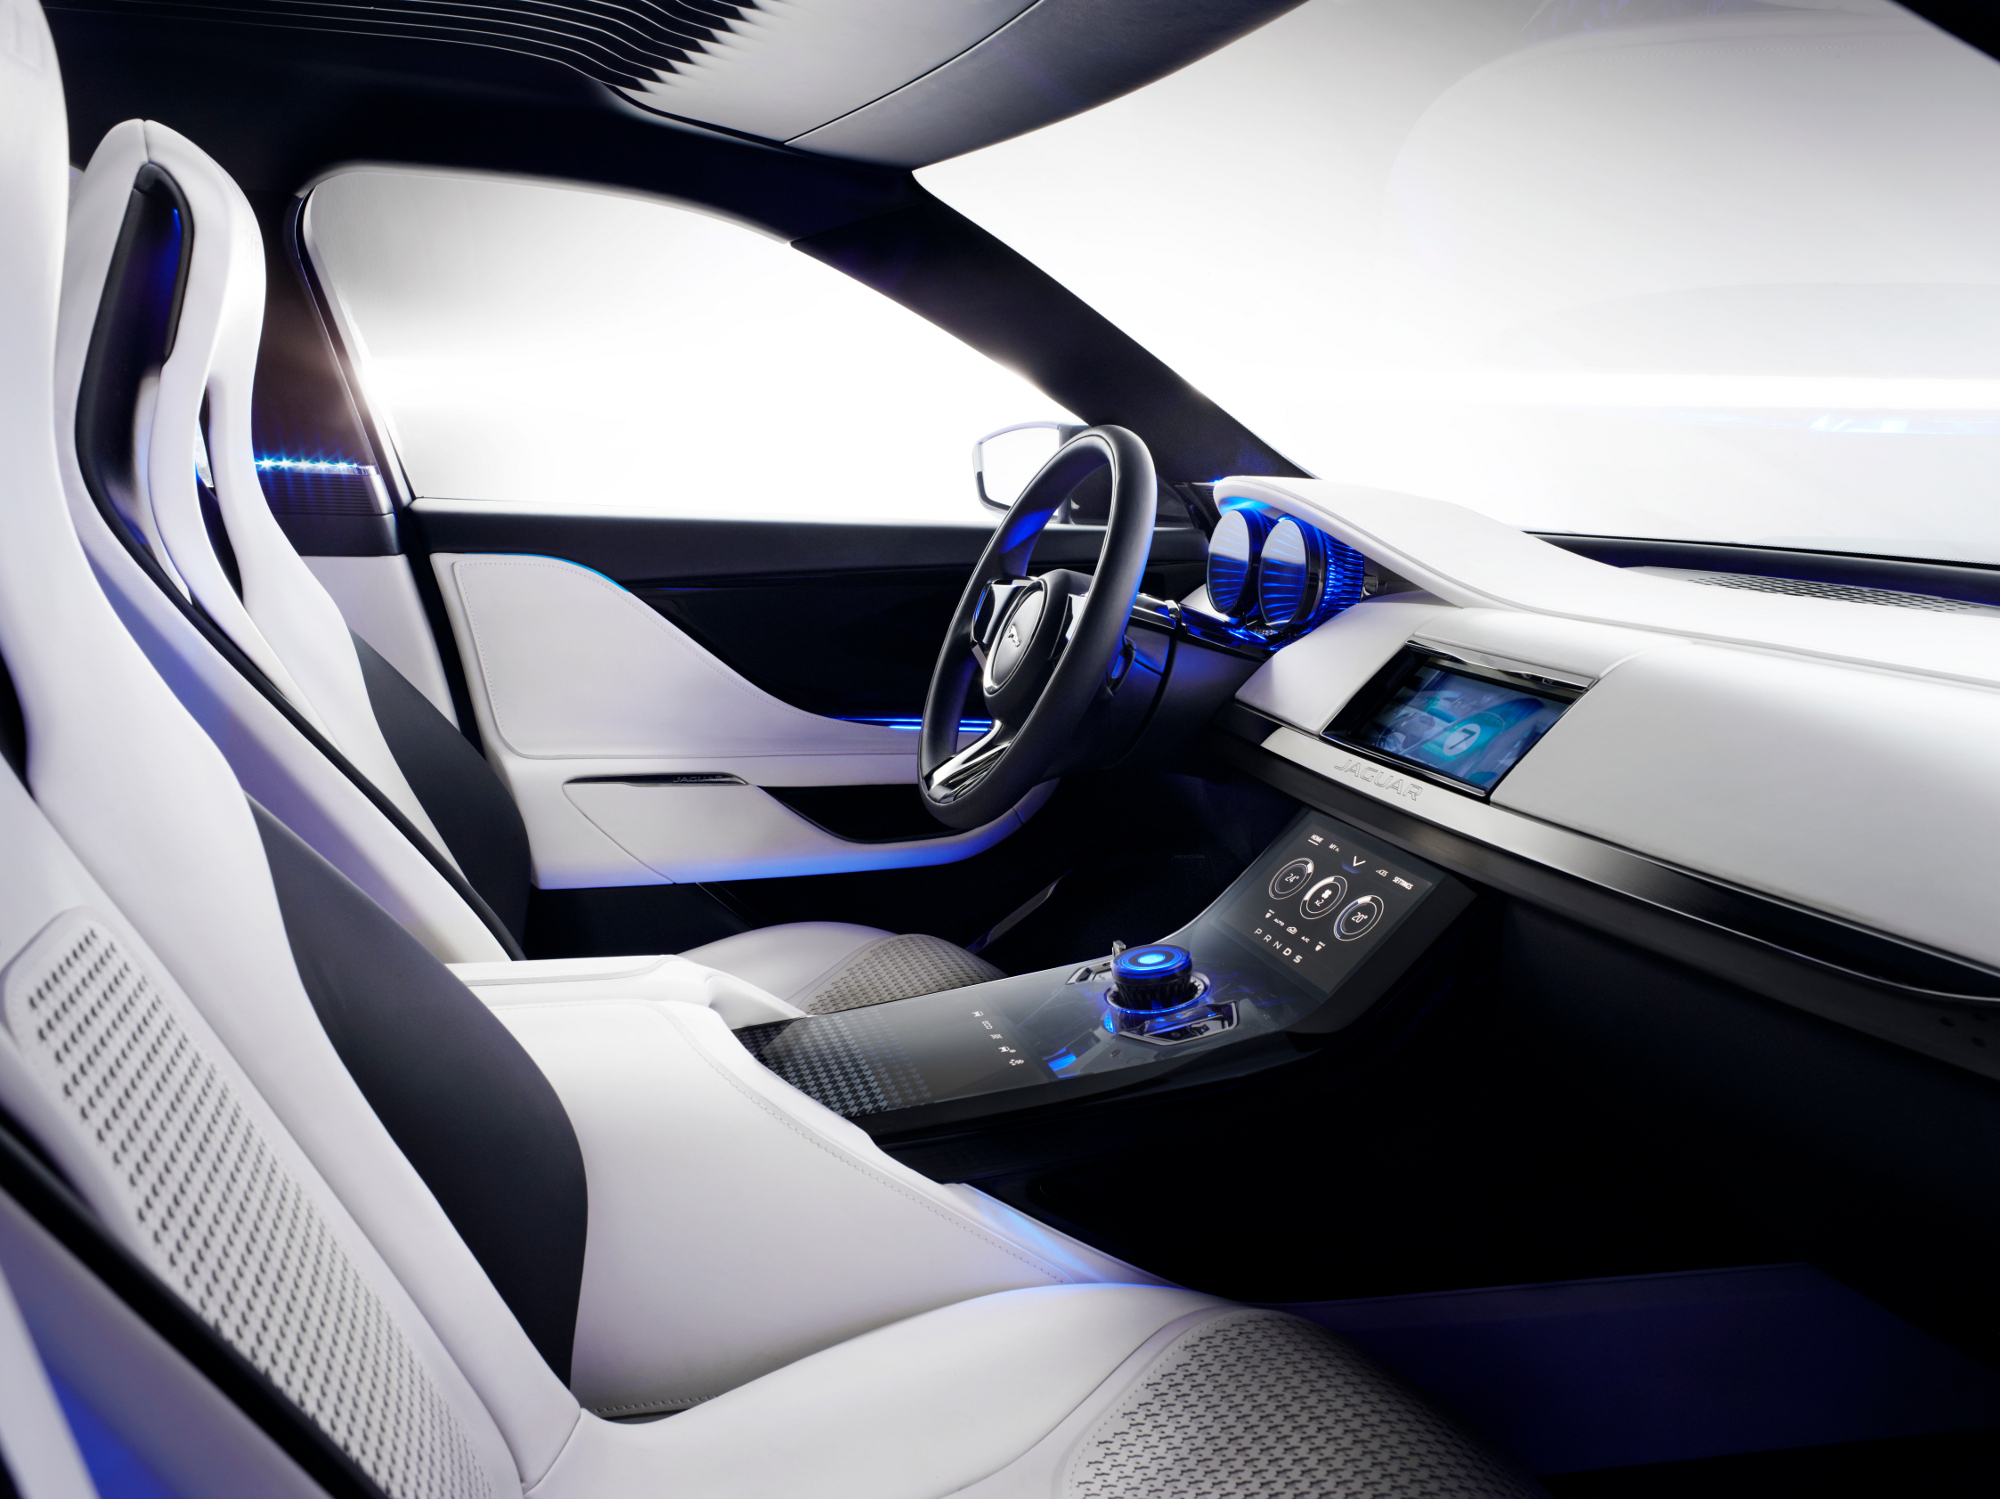 Vid o en direct du salon de francfort 2013 jaguar c x17 for Interieur jaguar f pace